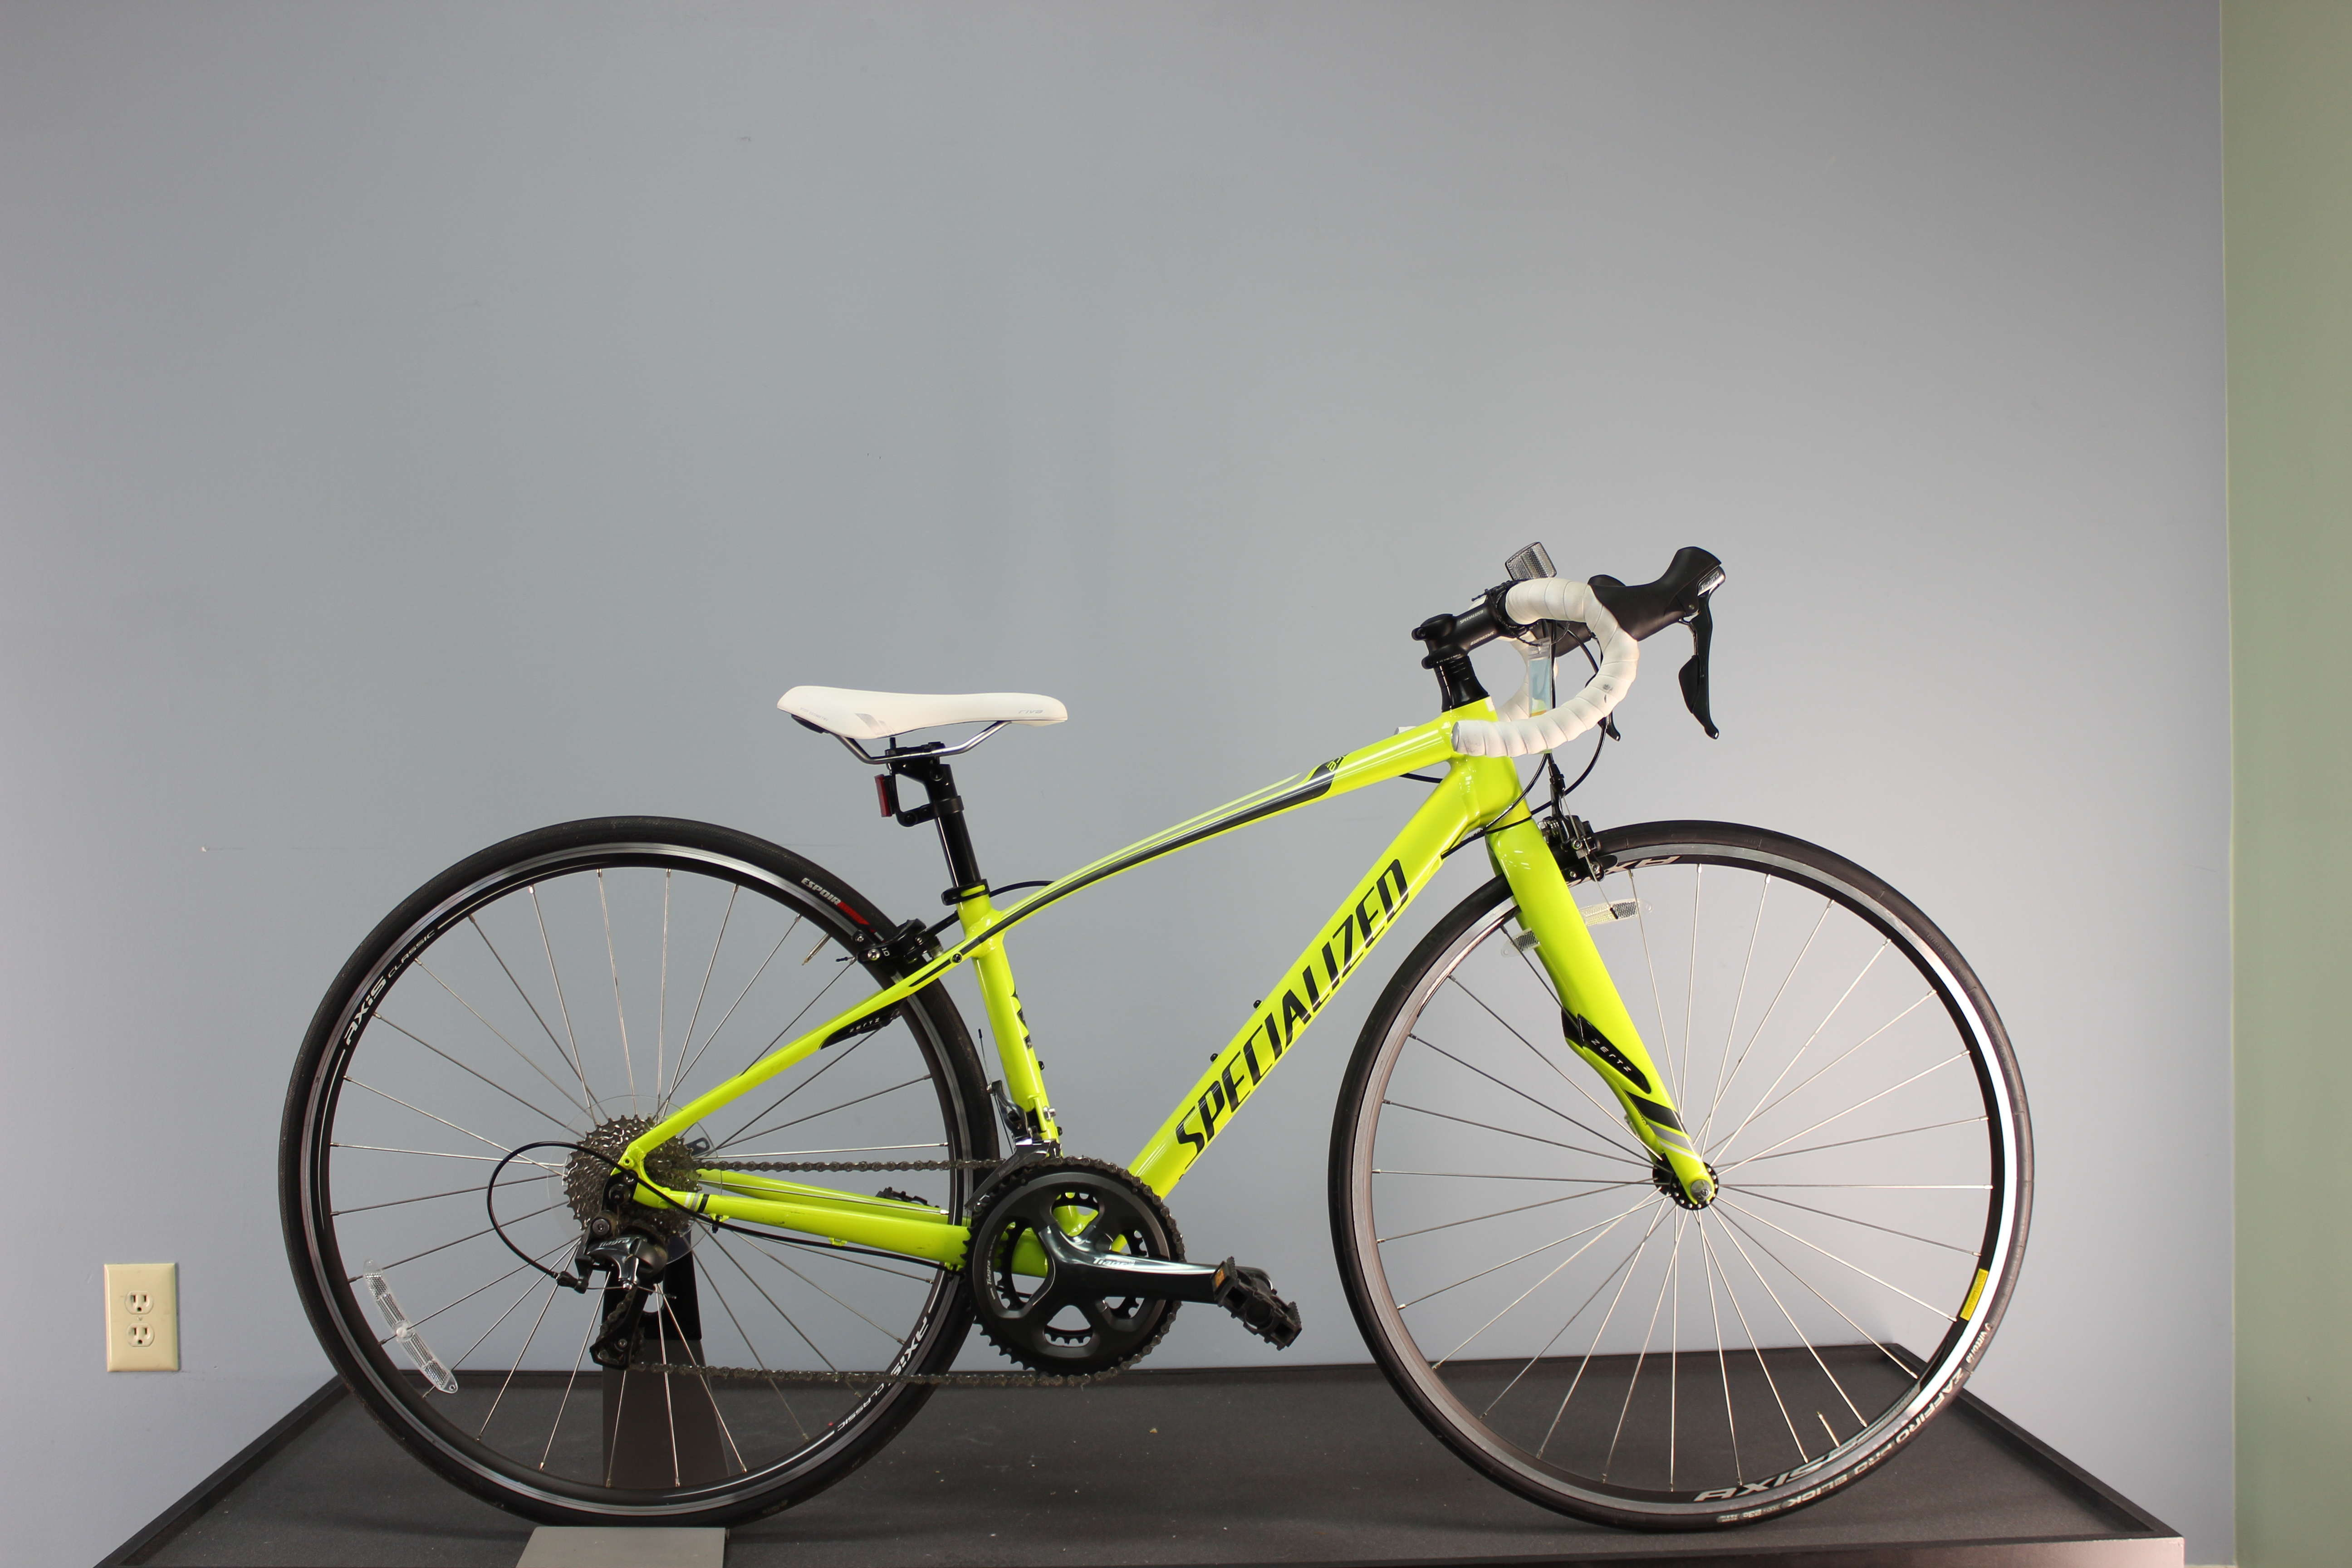 5d47fde0e6c Montgomery Cyclery Rental Bikes for Sale - Montgomery Cyclery